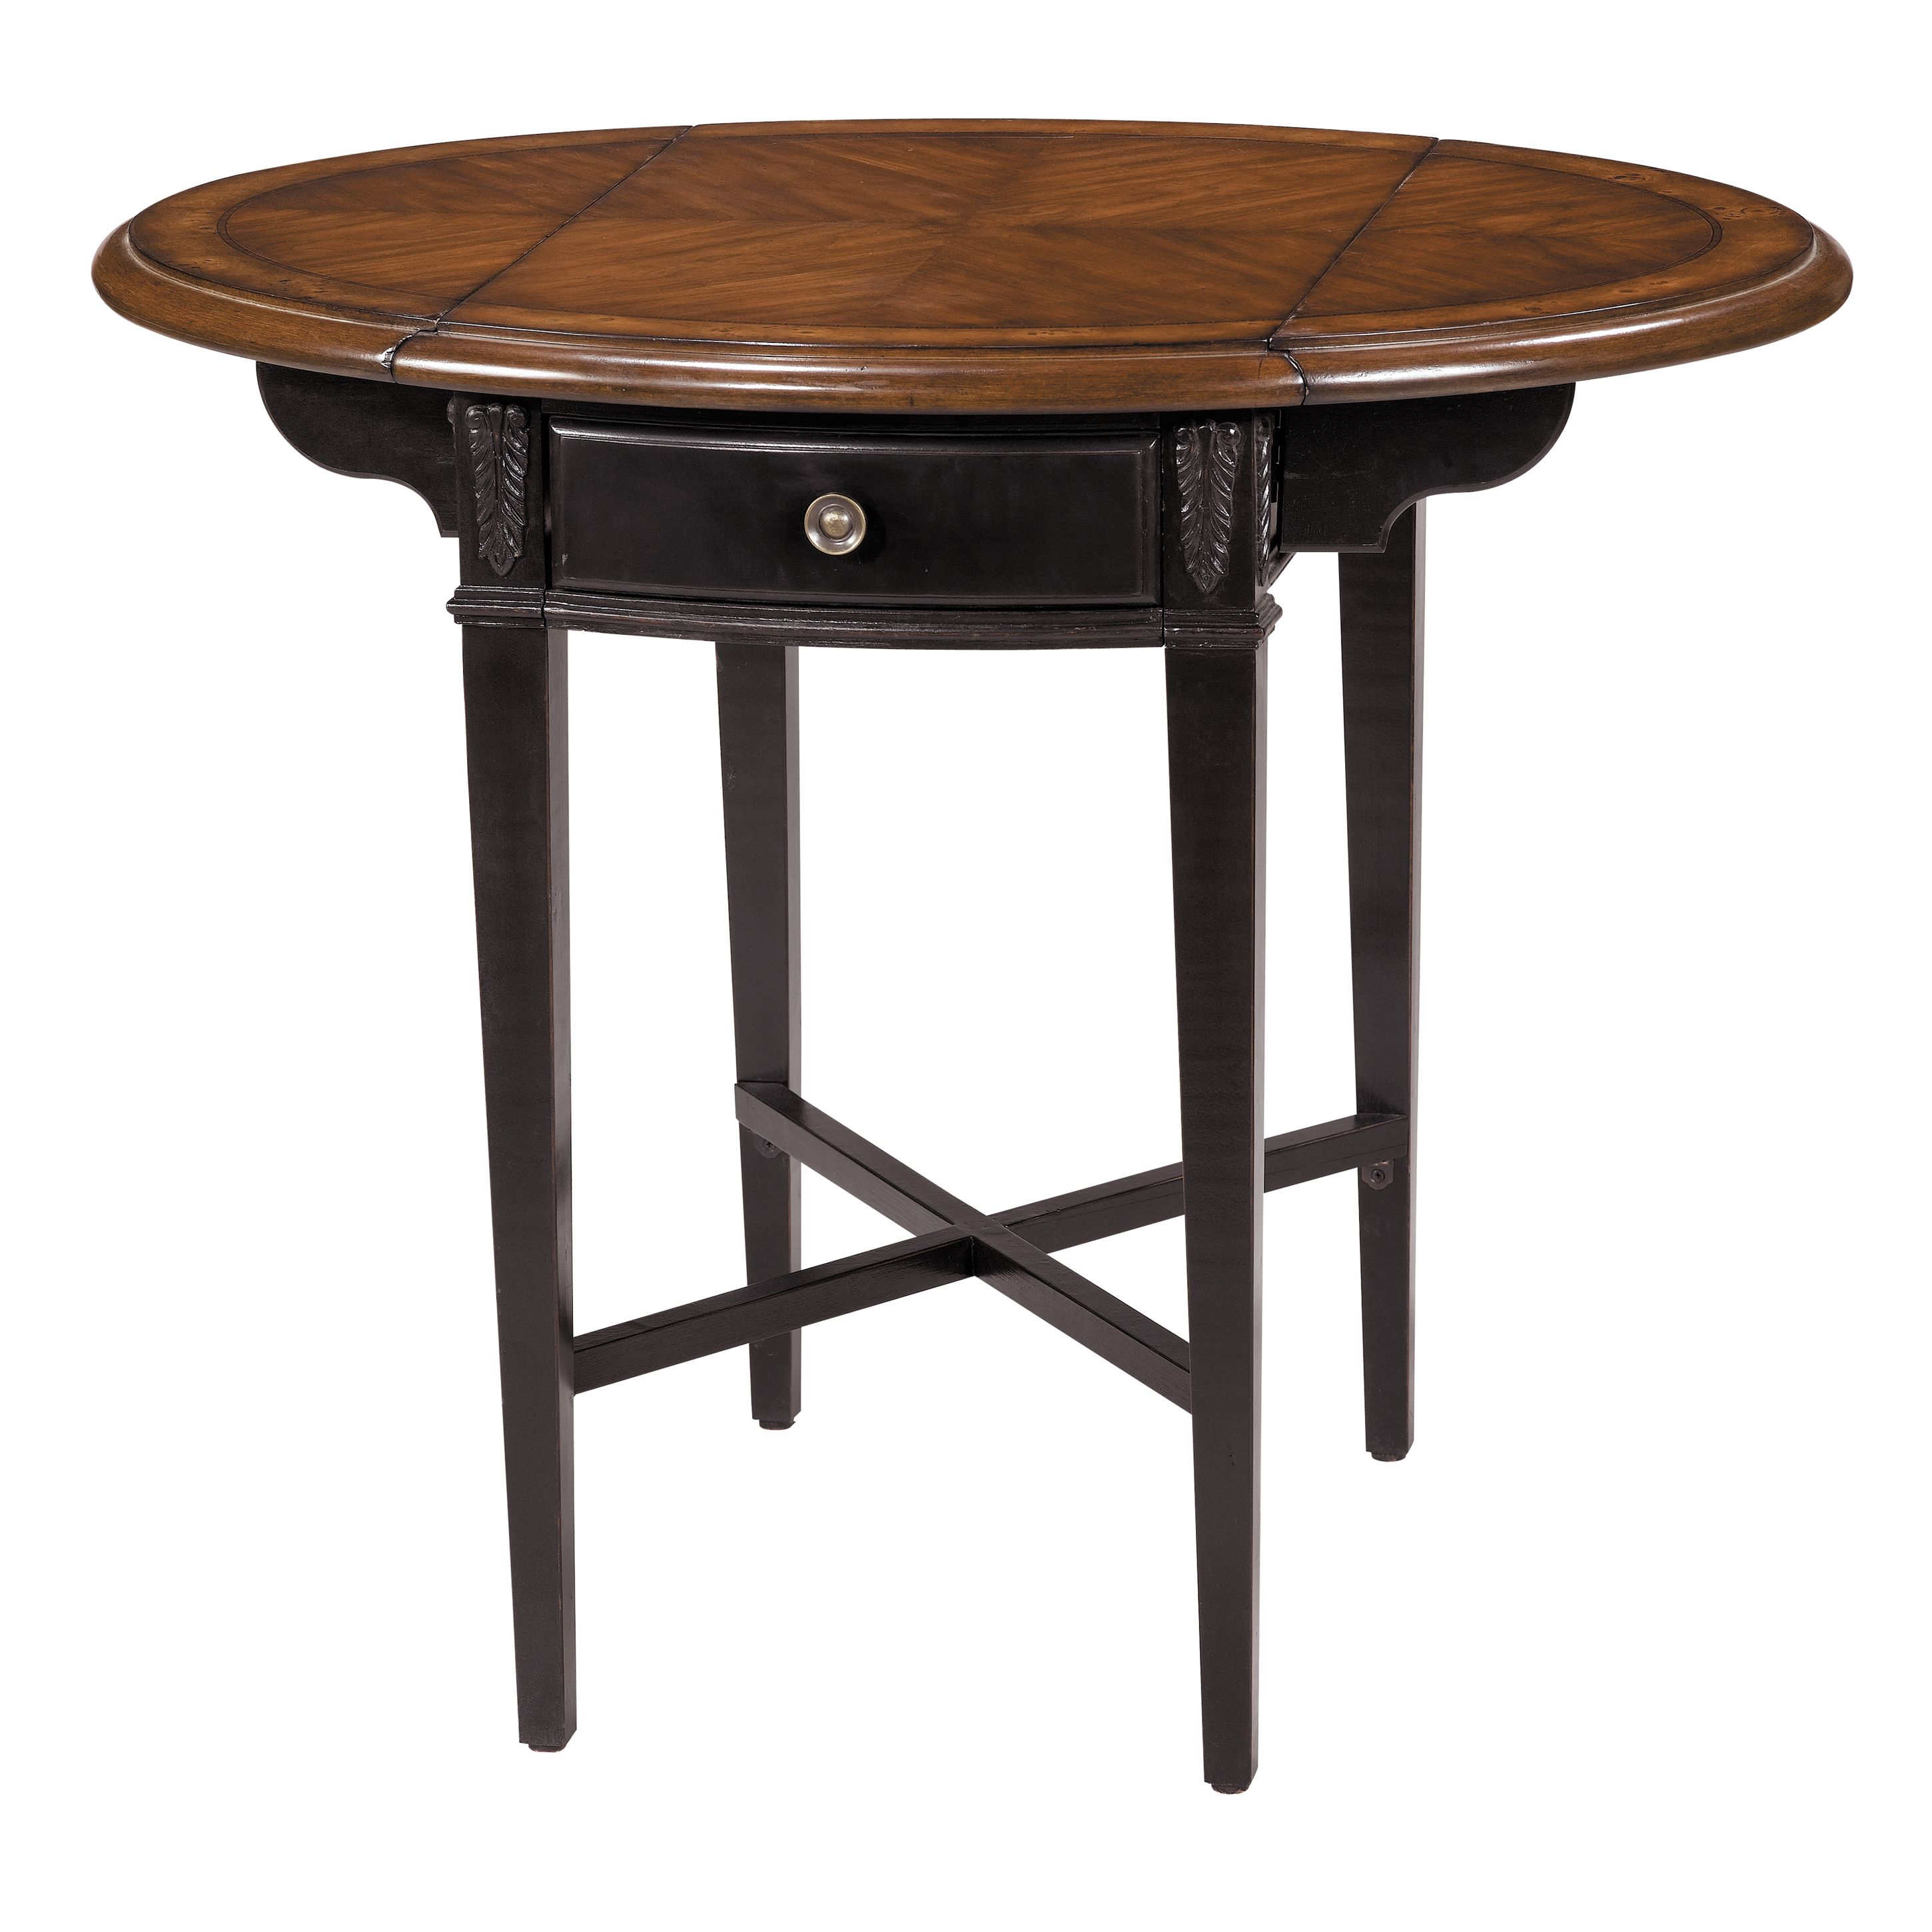 Drop Leaf Accent Table With One Drawer And A Burl Top. Product: Accent Table  Construction Material: MDF Color: Black And Medium Brown Features: Burl And  ...